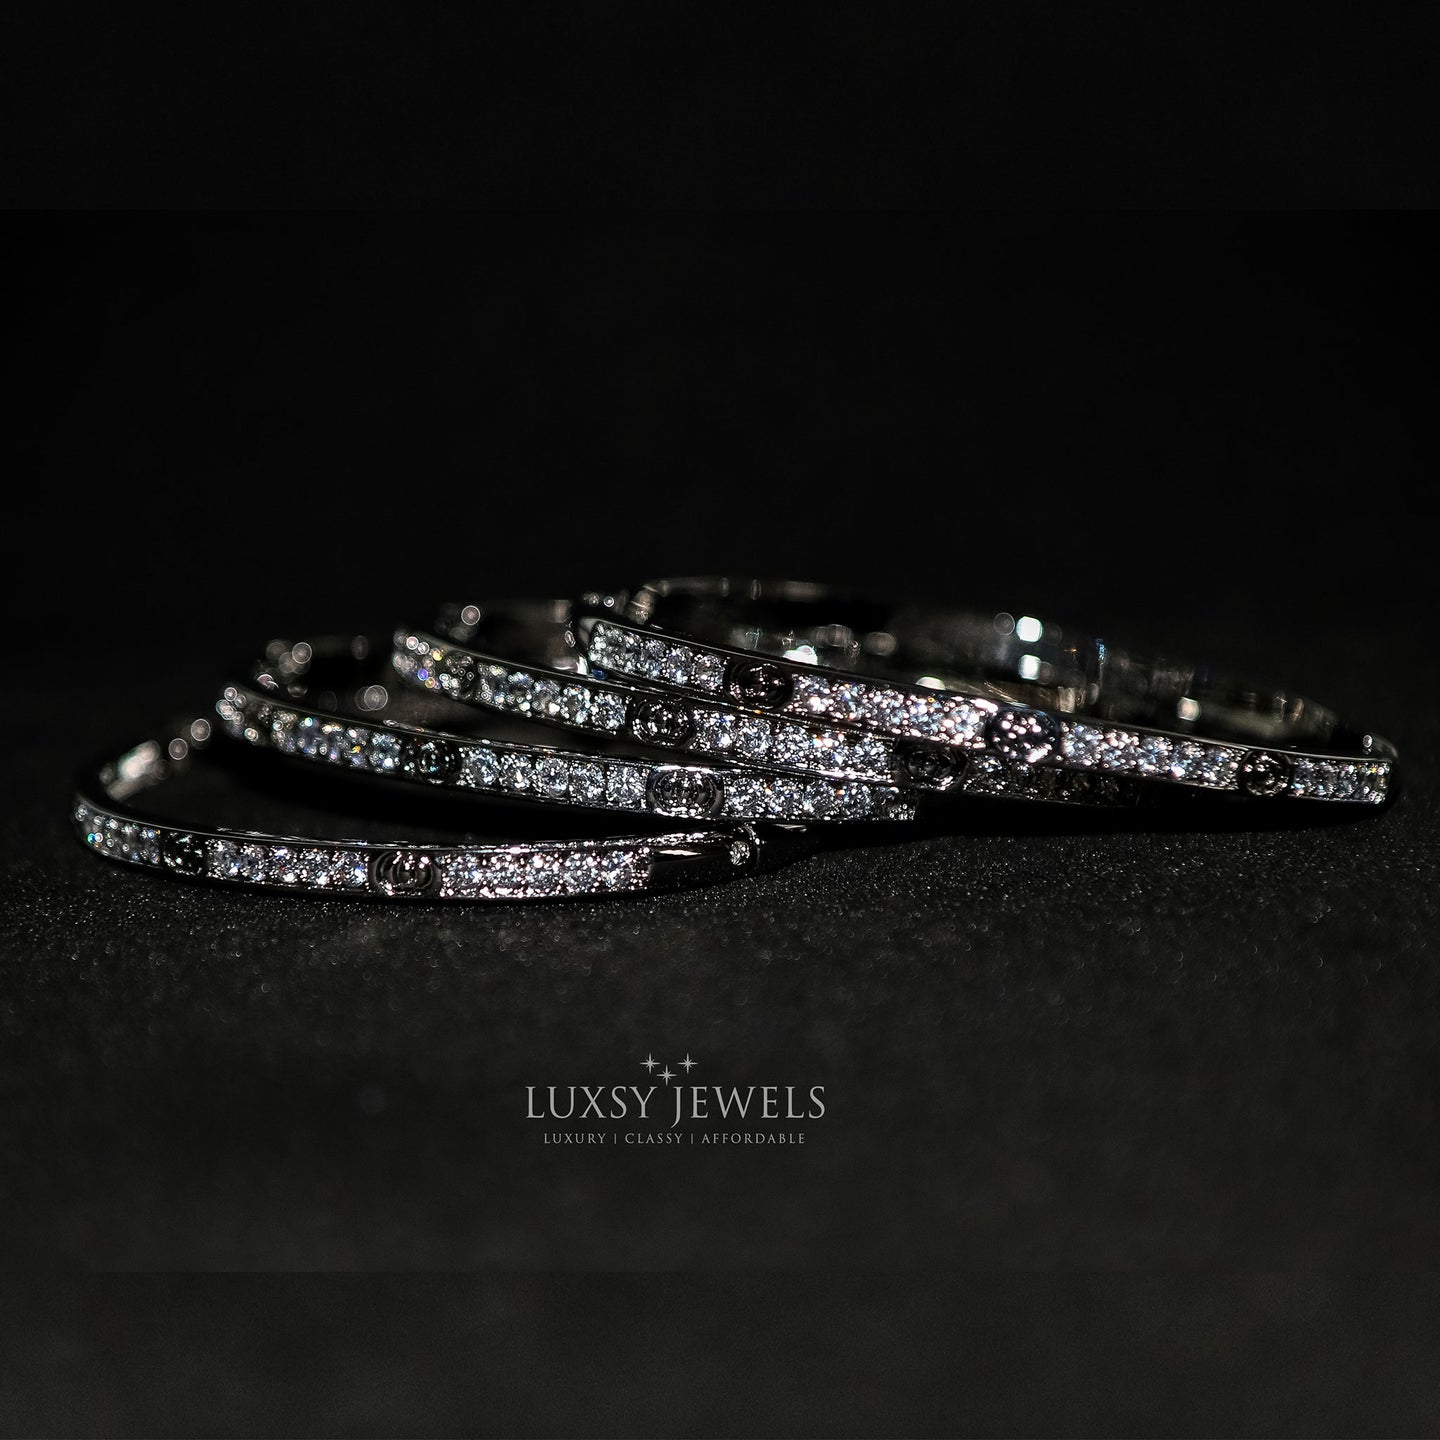 4 Luxsy Eternity Bangles - Luxsy Jewels